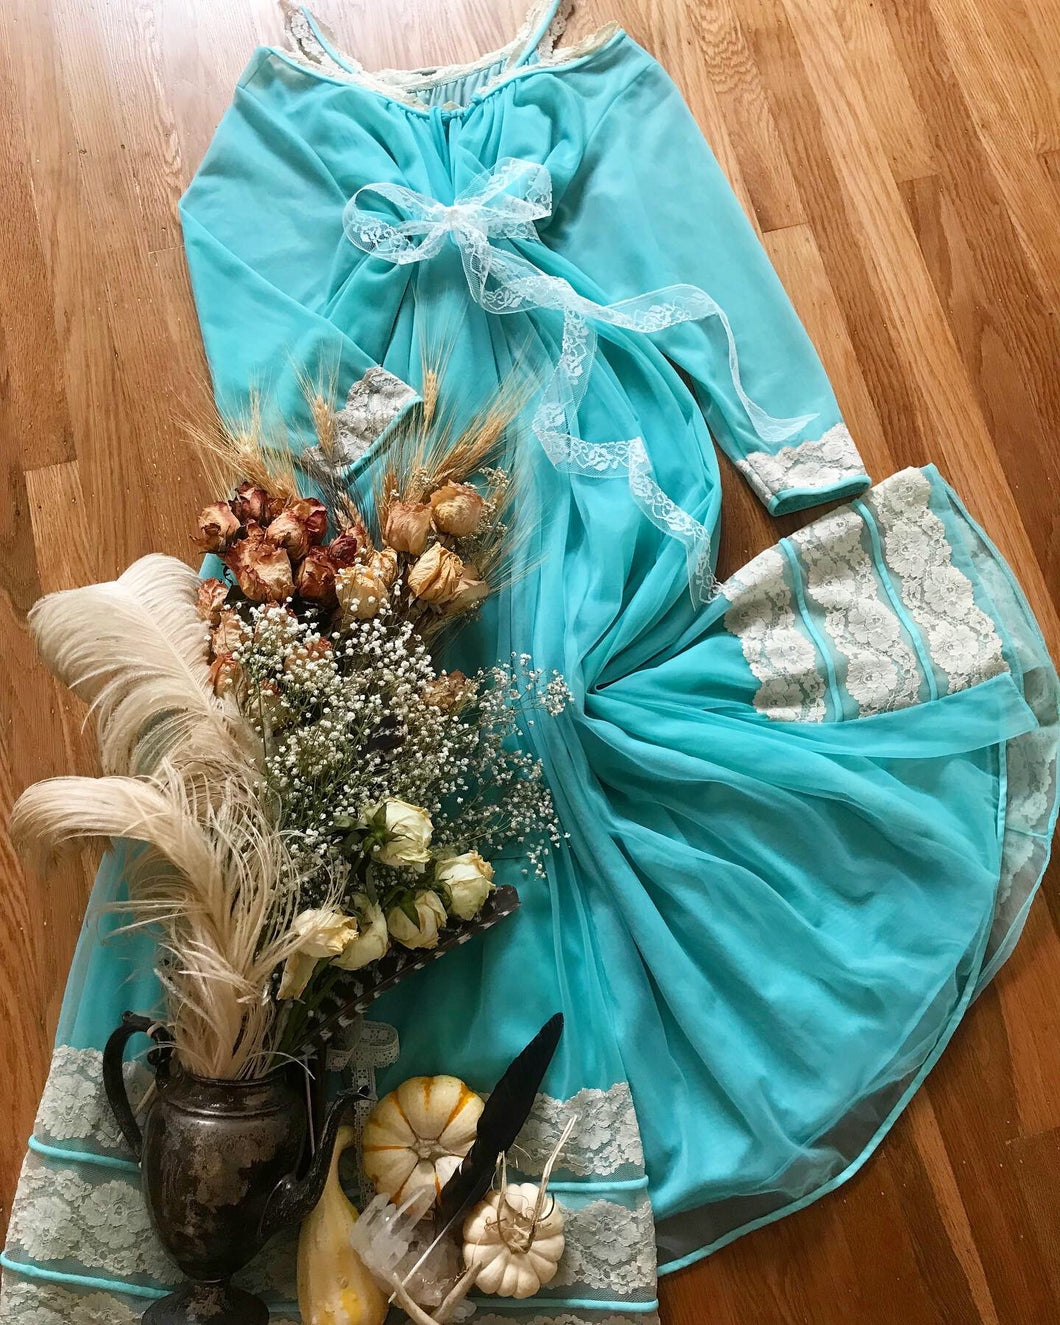 Authentic 1970's vintage Intime of California robe and nightgown set